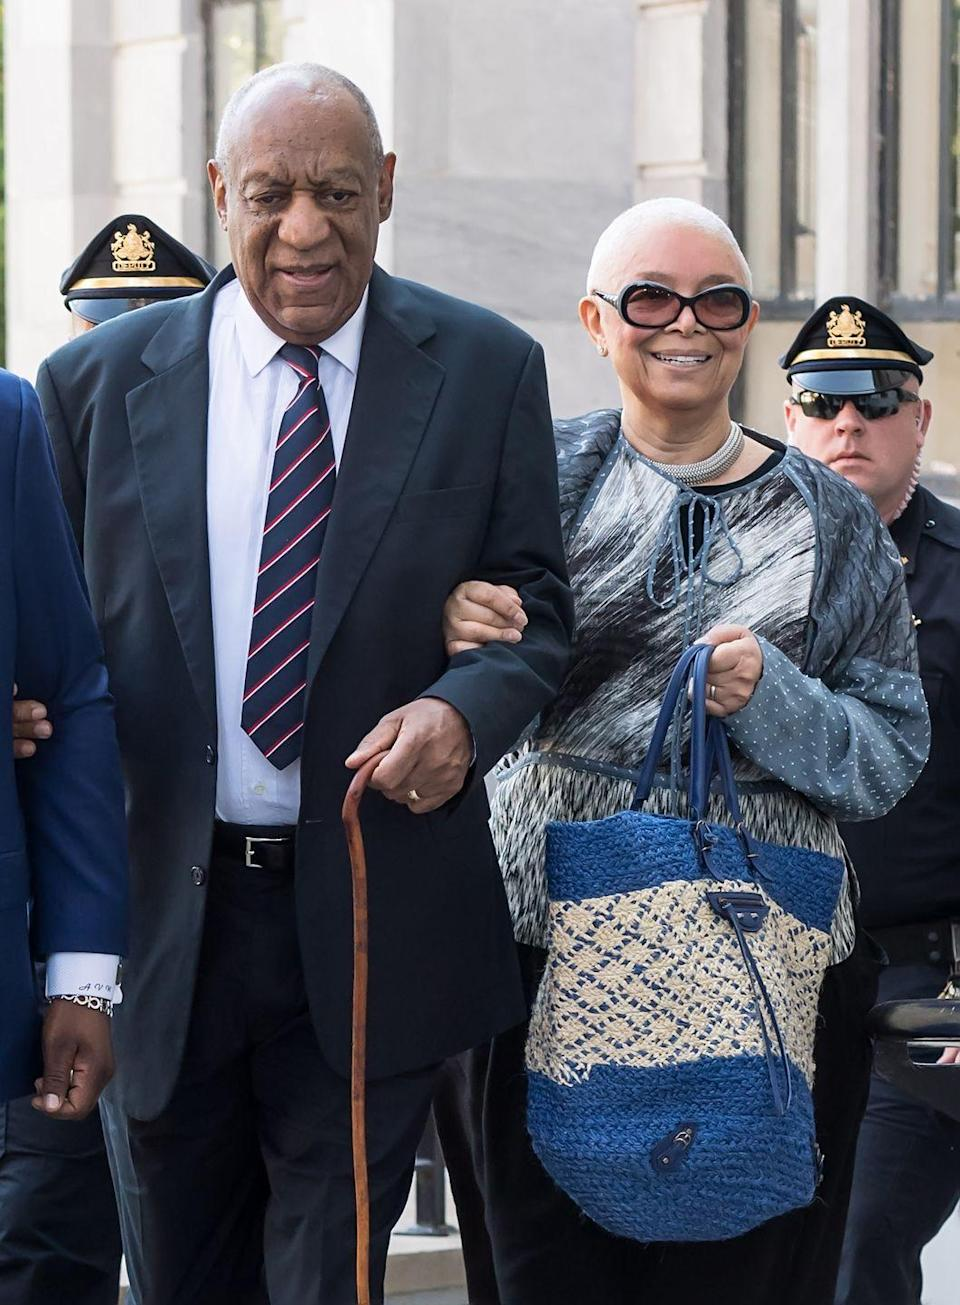 """<p>Even though her husband was convicted of rape and assault, Camille Cosby is still with him and still defending him, per <em><a href=""""https://www.nytimes.com/2018/09/17/arts/television/bill-cosby-camille-cosby-trial-judge.html"""" rel=""""nofollow noopener"""" target=""""_blank"""" data-ylk=""""slk:The New York Times"""" class=""""link rapid-noclick-resp"""">The New York Times</a></em>. </p><p>According to <em><a href=""""https://people.com/tv/bill-cosby-not-divorcing-wife-camille/"""" rel=""""nofollow noopener"""" target=""""_blank"""" data-ylk=""""slk:People"""" class=""""link rapid-noclick-resp"""">People</a></em>, the two have been married since 1964—during which time more than 60 women have come forward with accusations and proof of Bill's sexual misconduct and assault.</p>"""